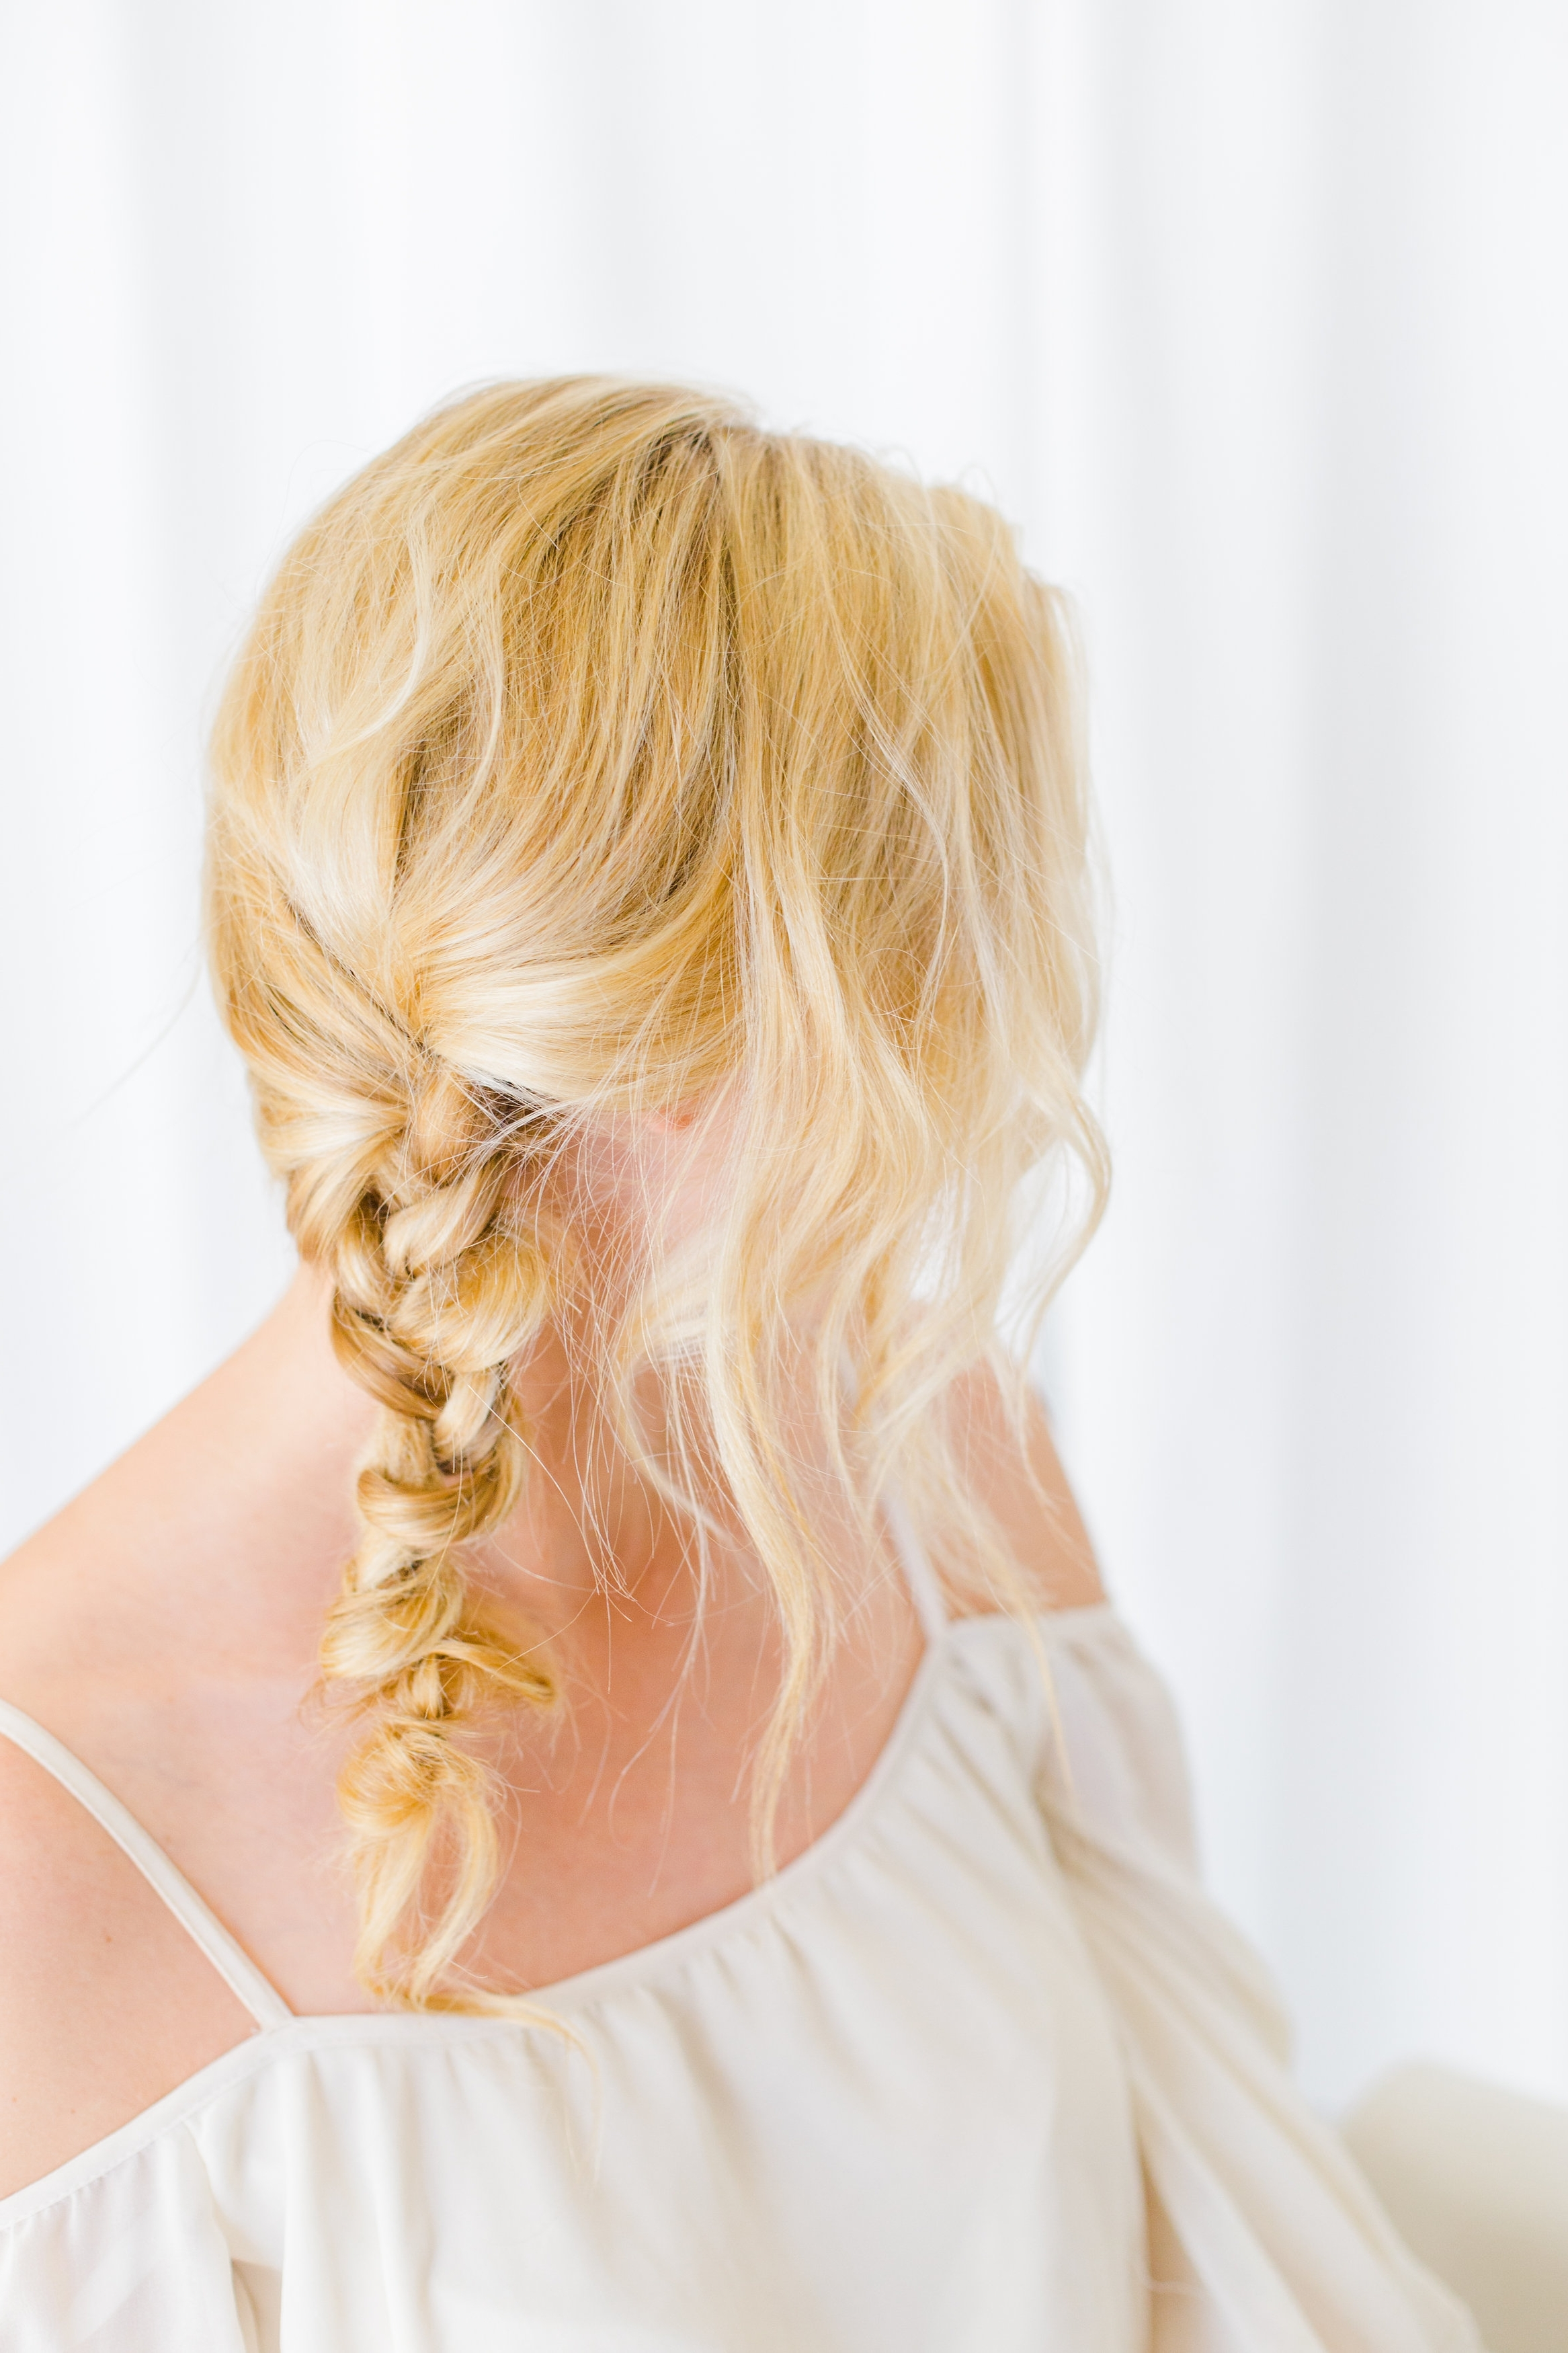 Most Recently Released Macrame Braid Hairstyles With Regard To Boho Braids  Hair Tutorial – Beijos Events (View 14 of 20)